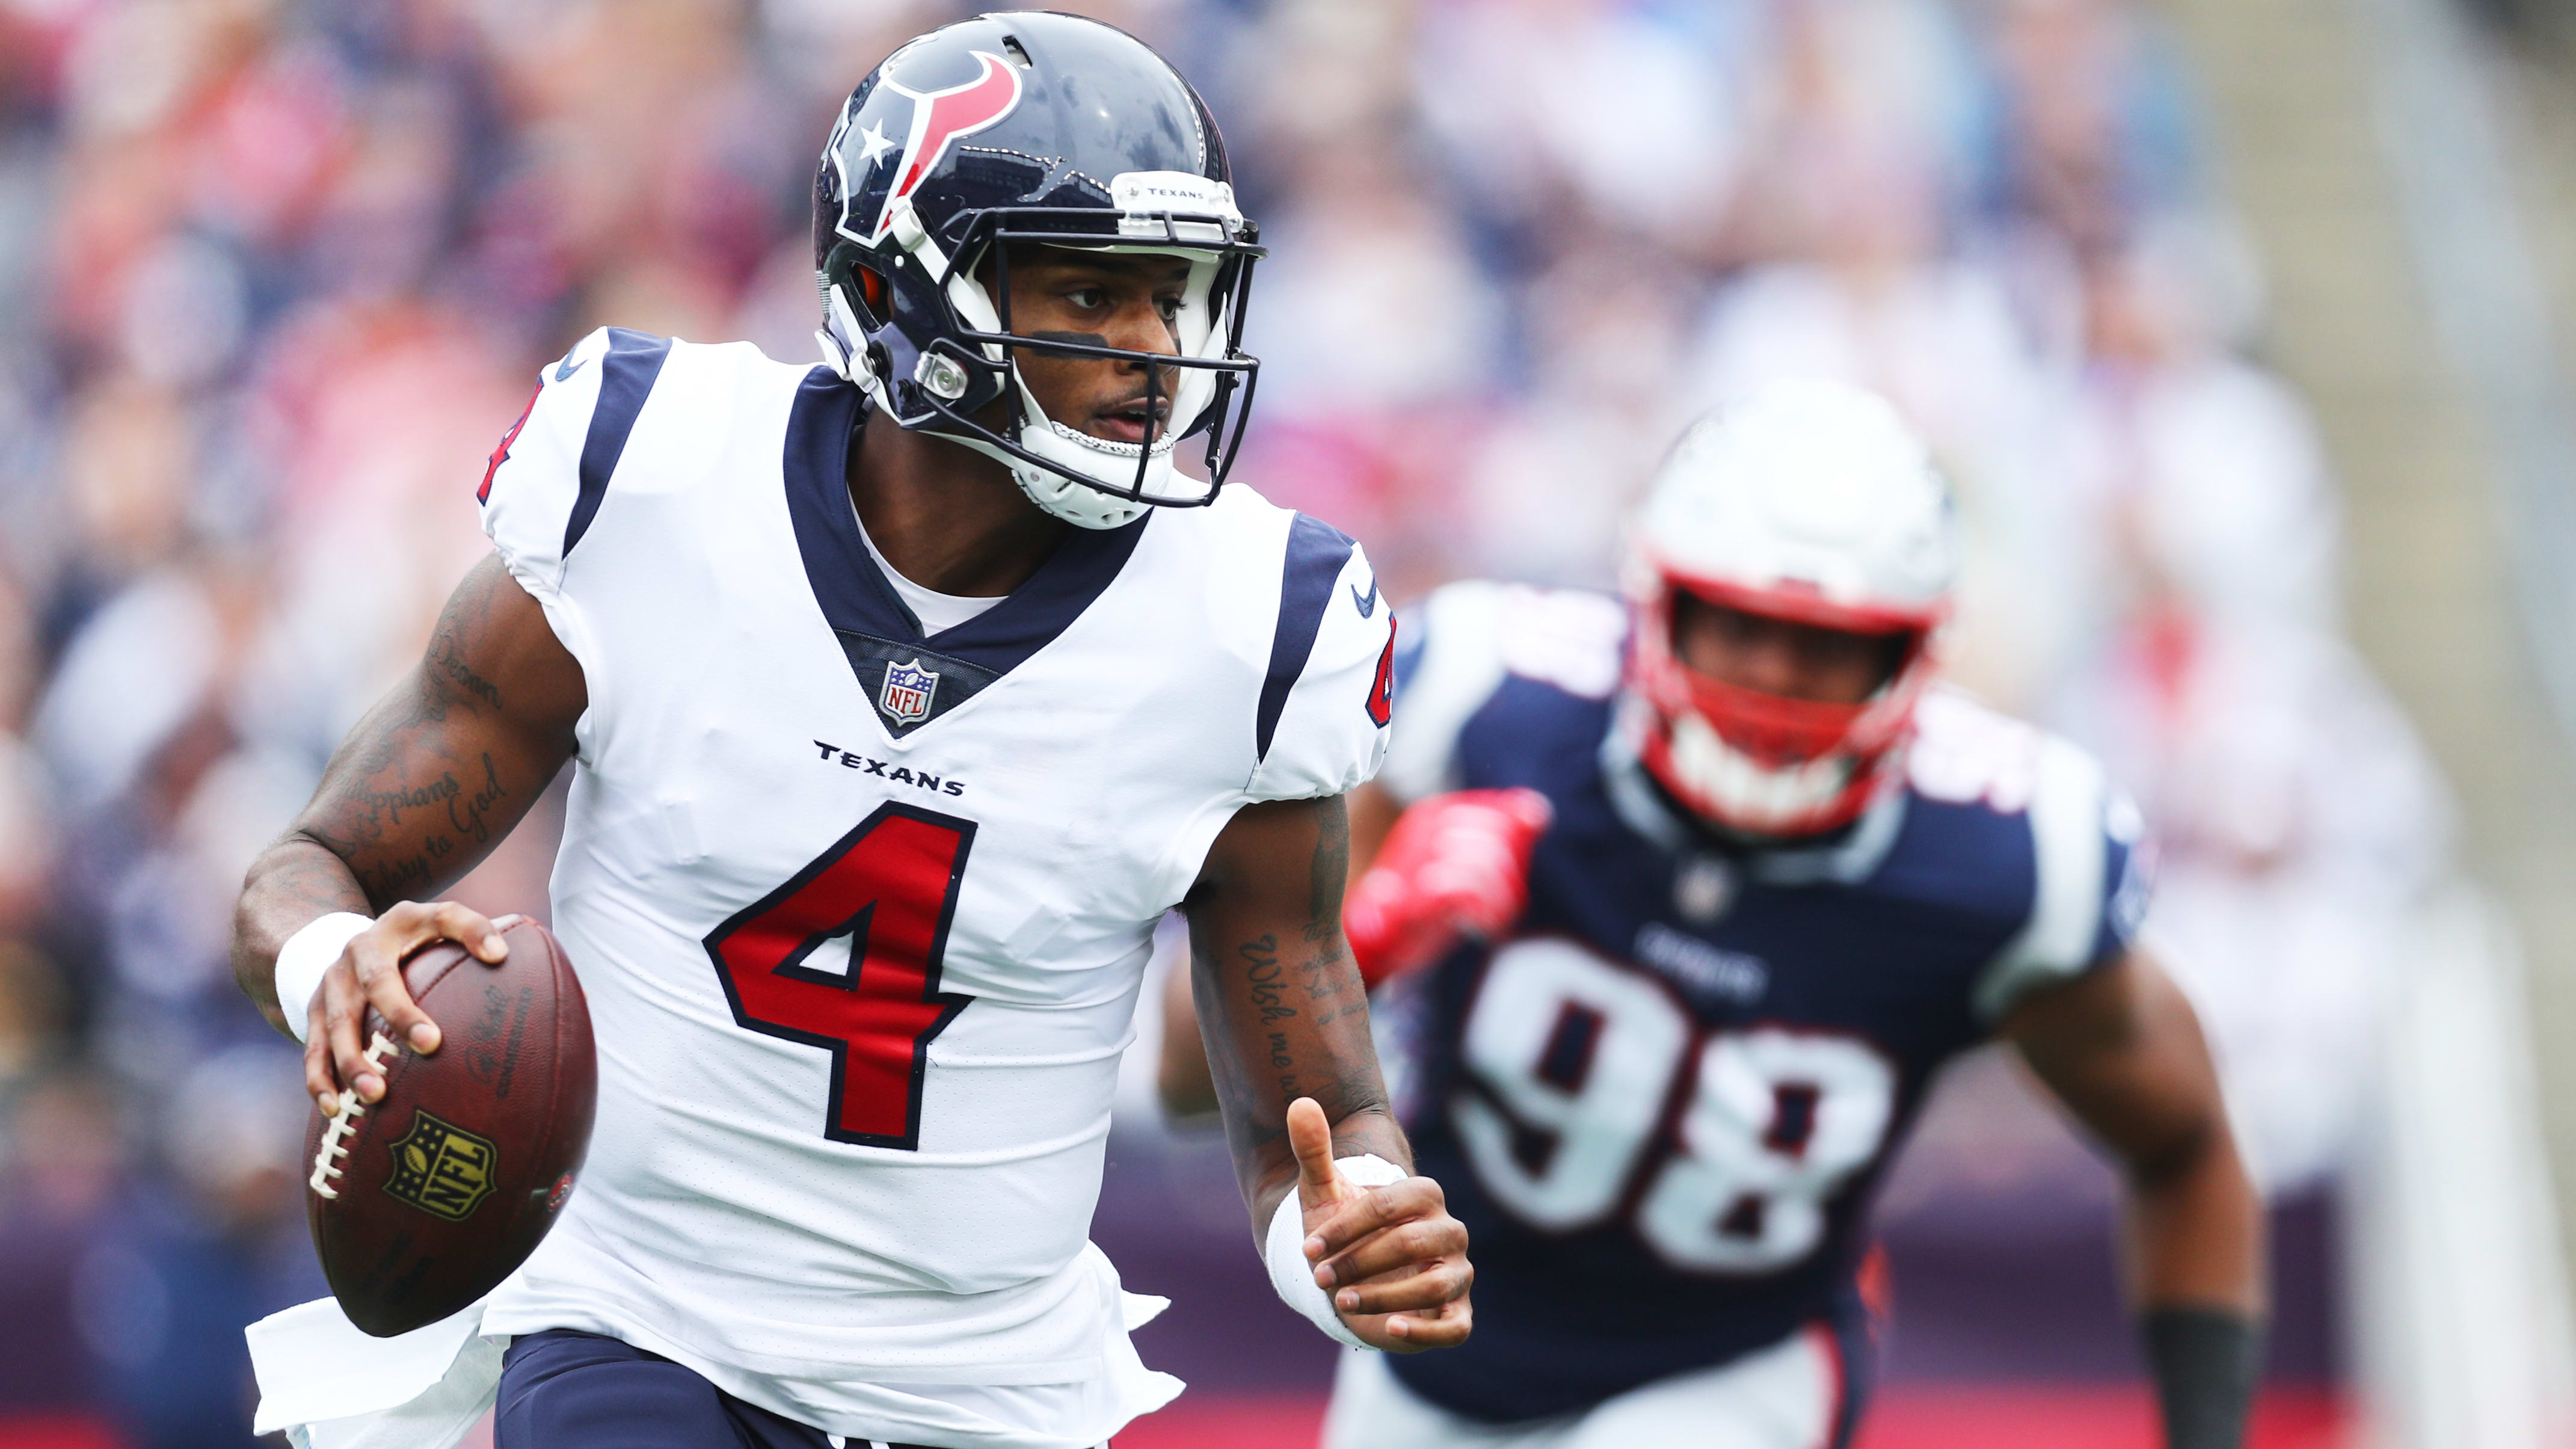 FOXBOROUGH, MA - SEPTEMBER 09: Deshaun Watson #4 of the Houston Texans runs with the ball against the New England Patriots at Gillette Stadium on September 9, 2018 in Foxborough, Massachusetts.(Photo by Maddie Meyer/Getty Images)